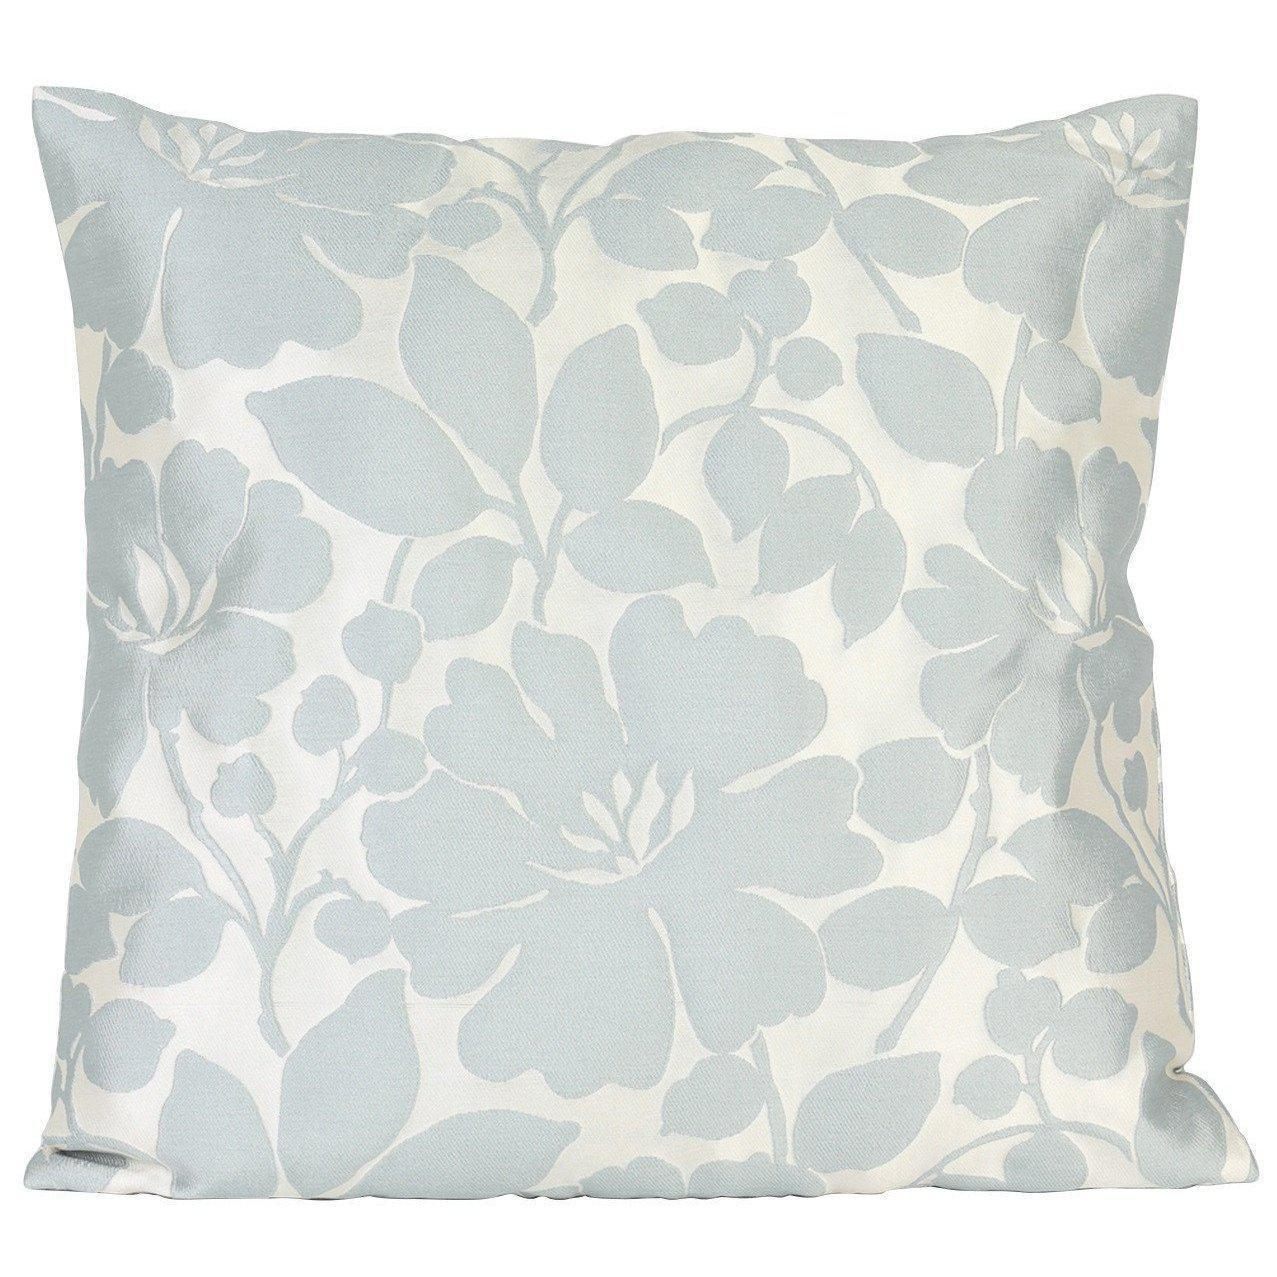 Turquoise Blue and Silver Floral Cushion Cover-ML Living-Temples and Markets